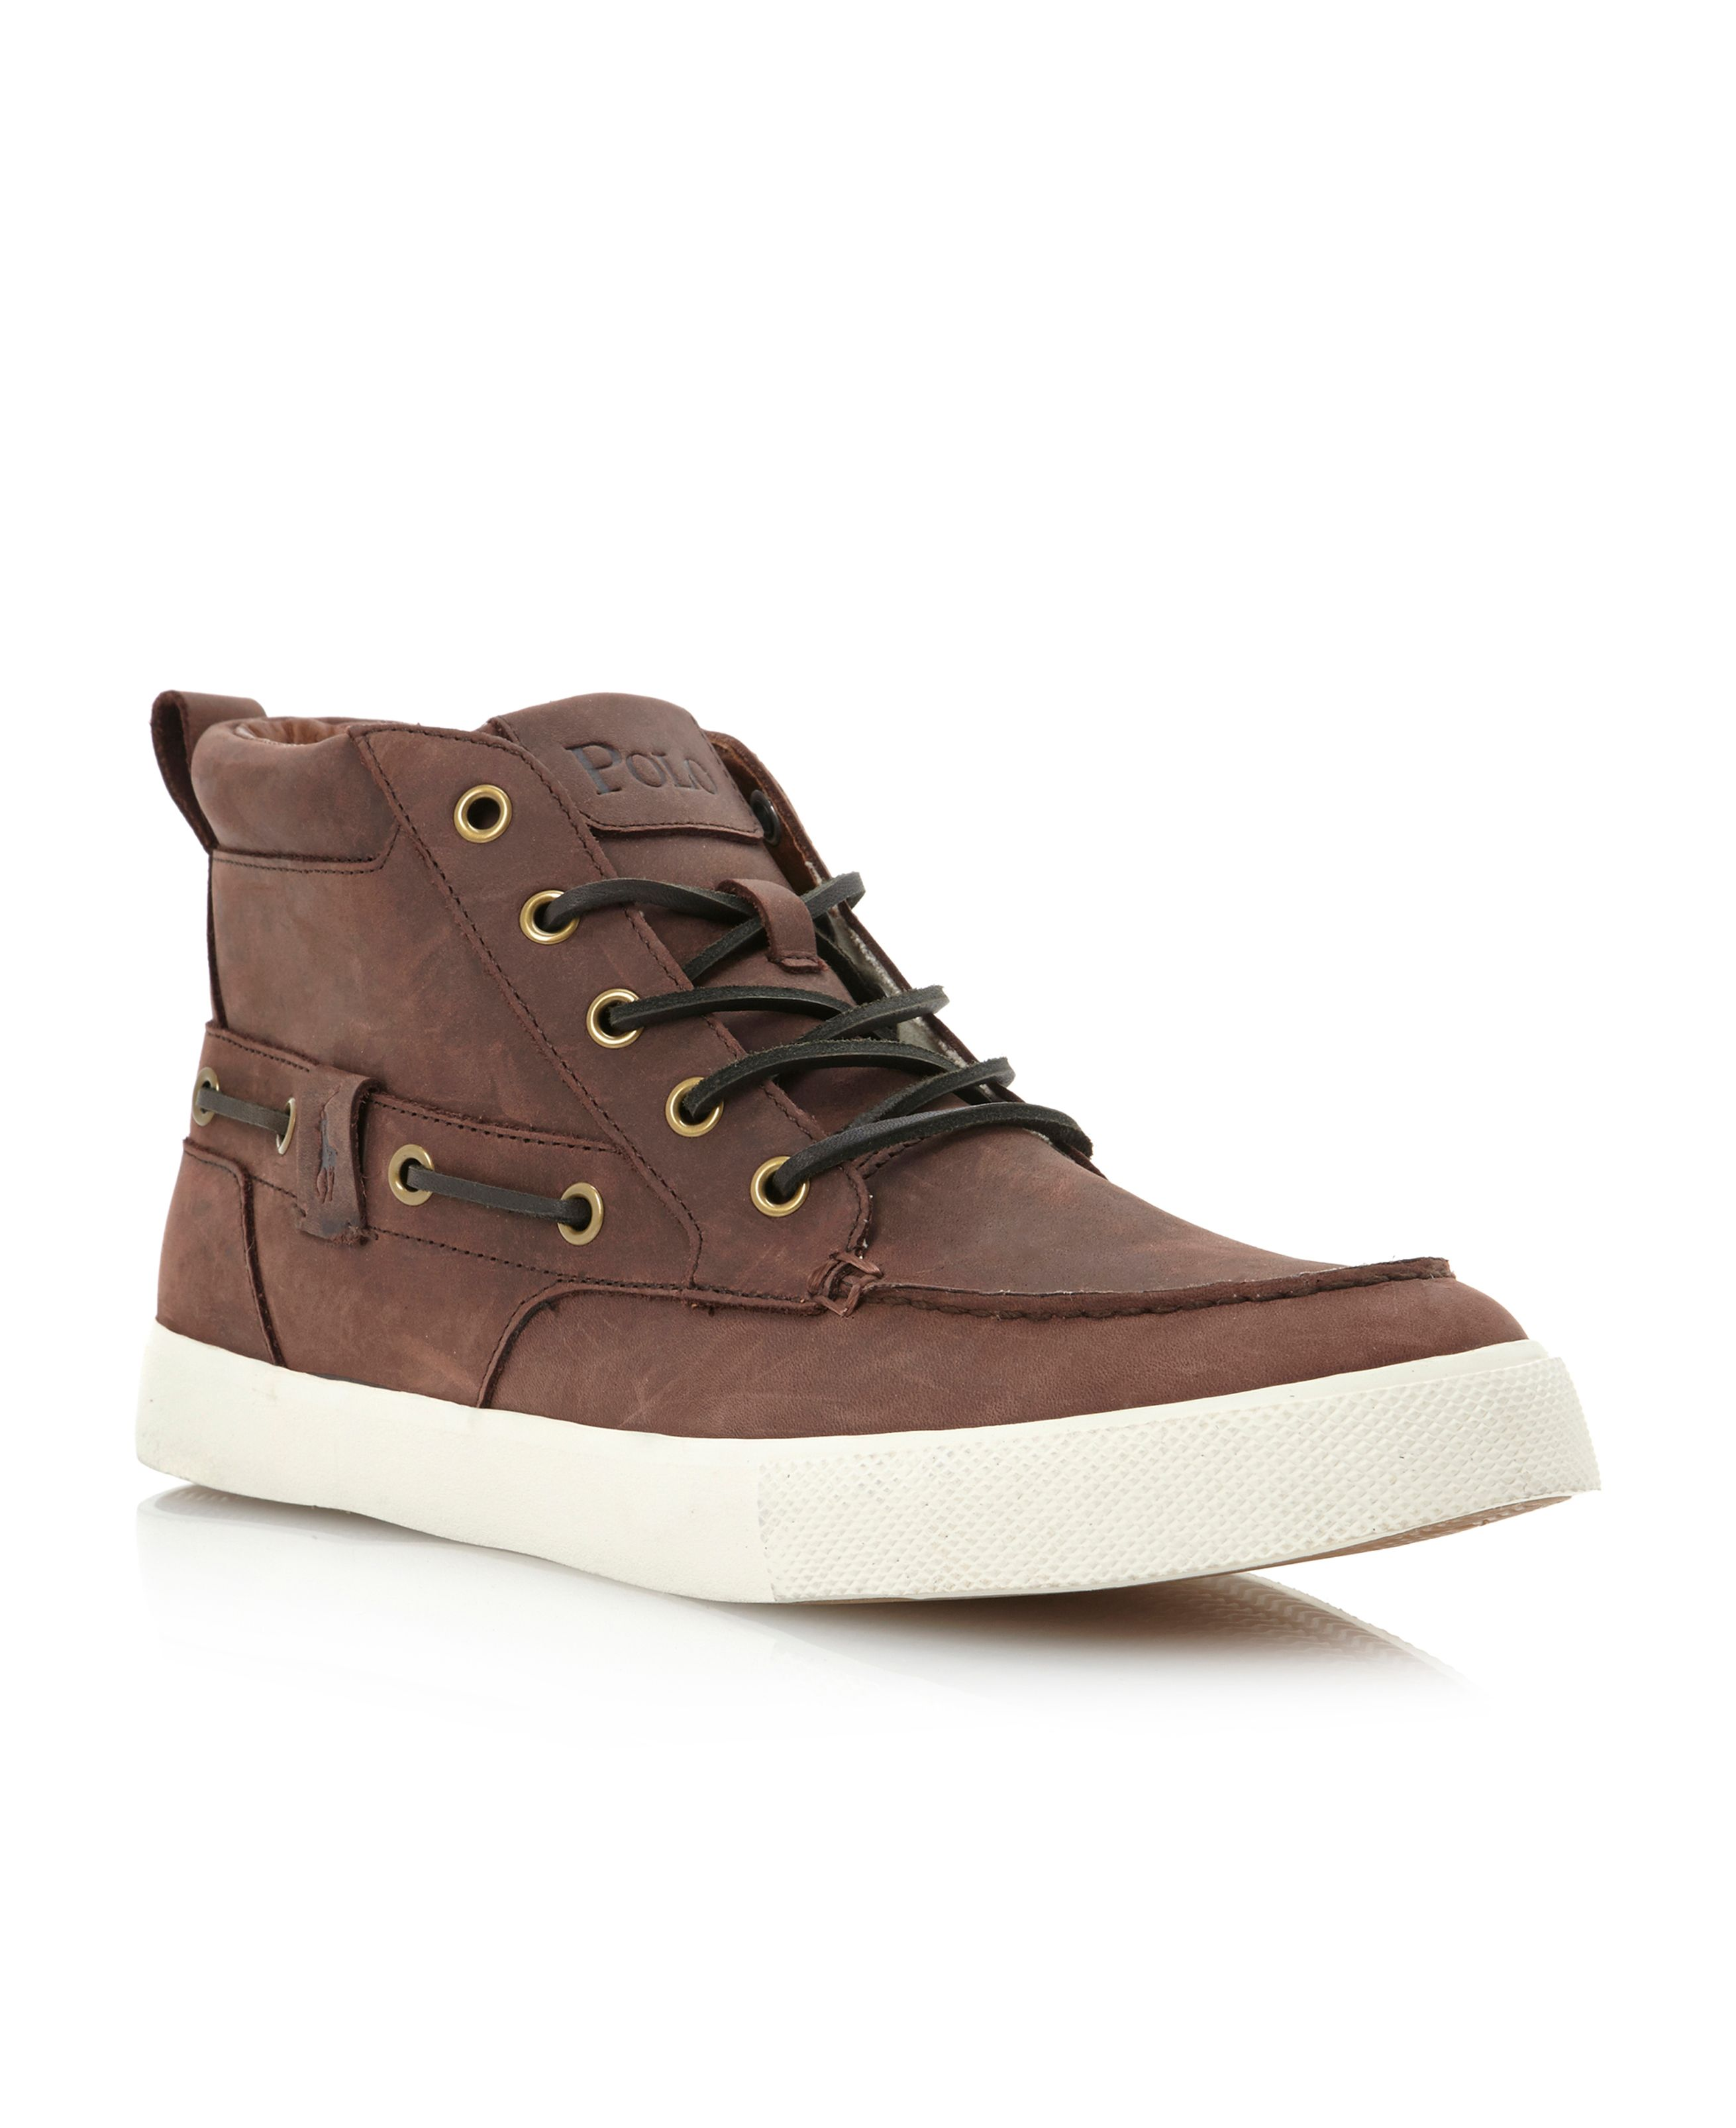 Tristen-vulcanised hi top